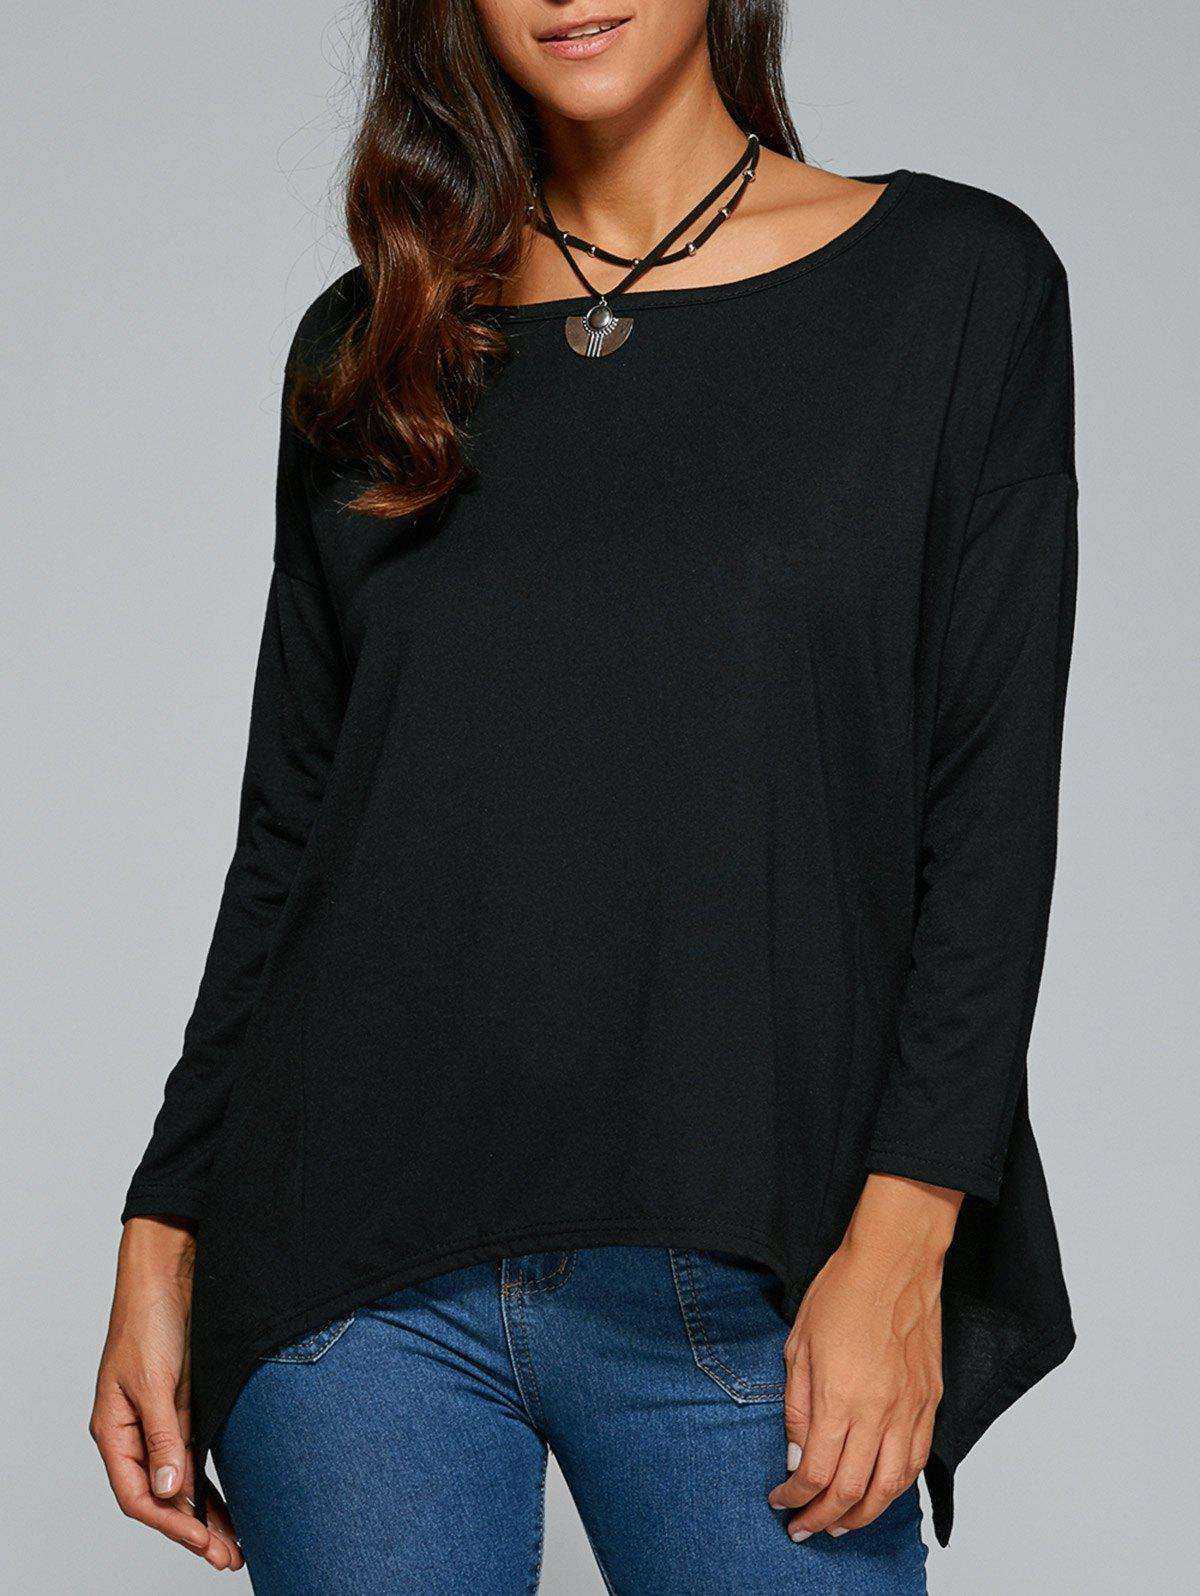 Hankerchief Hem Long Sleeves Casual Top - BLACK M